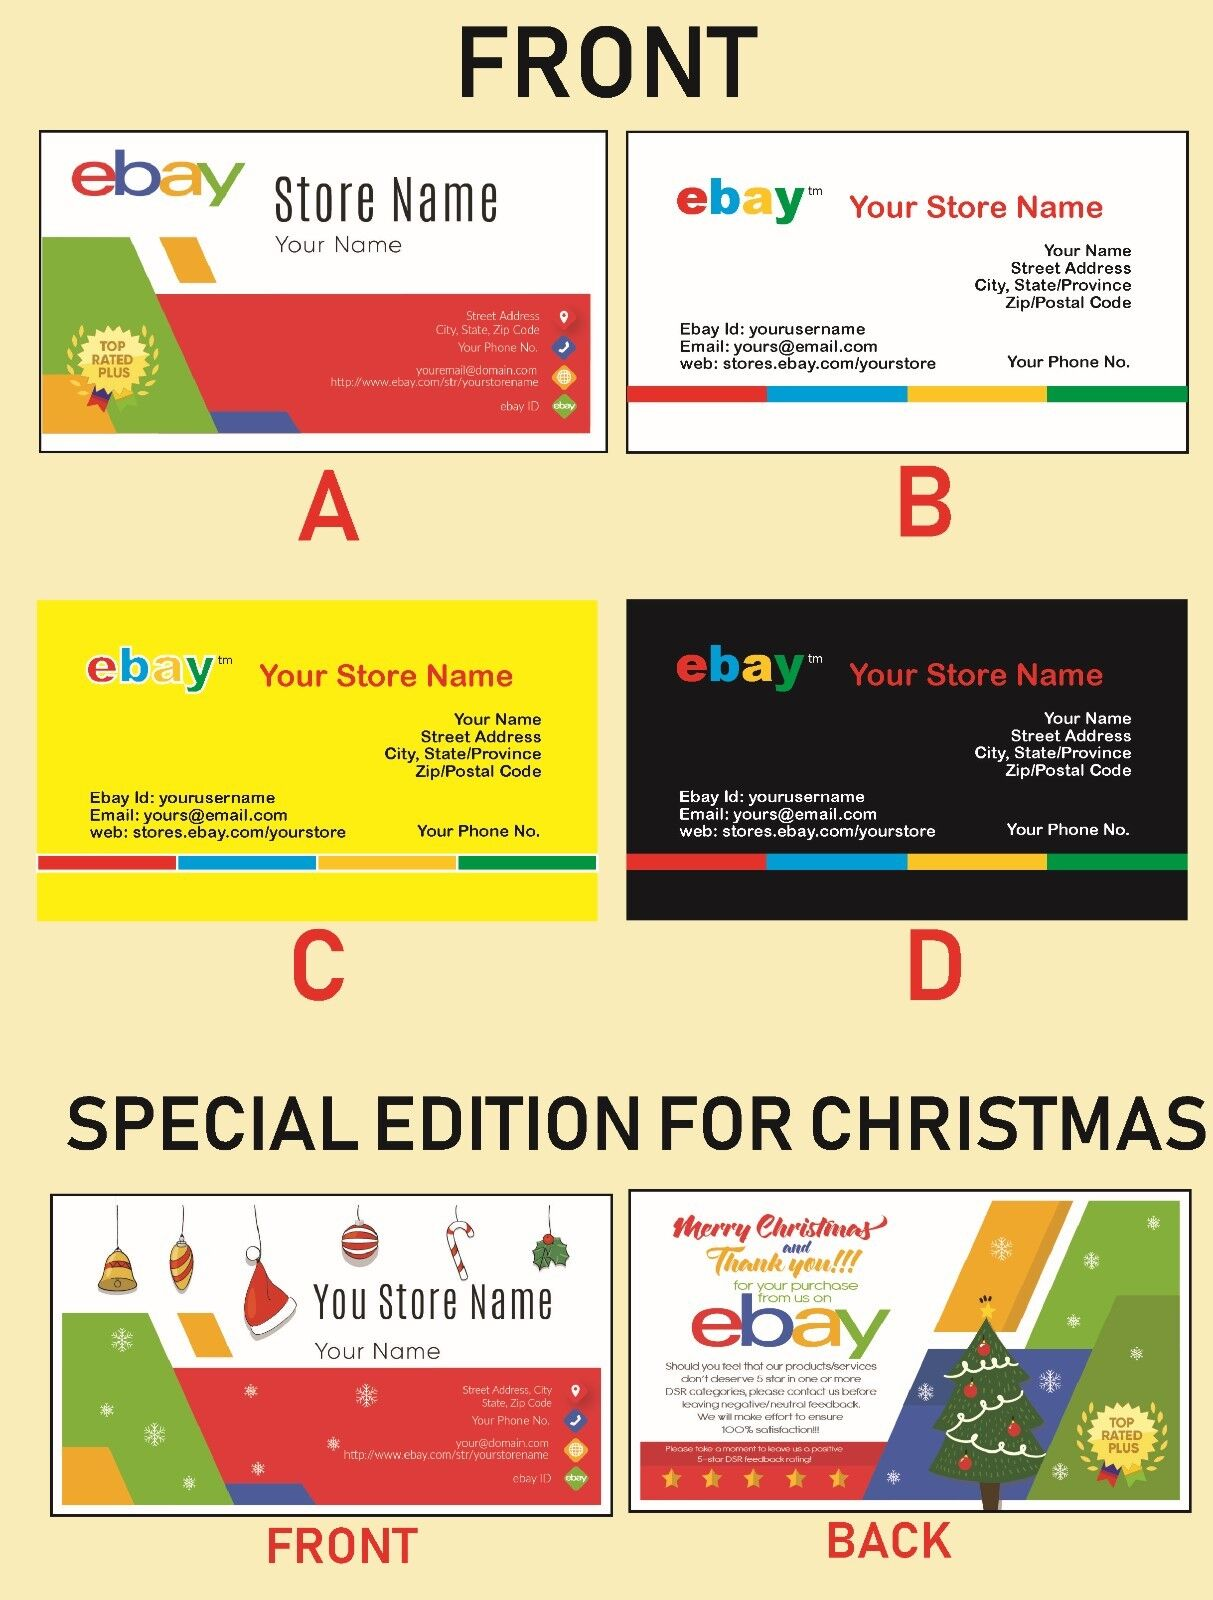 500 Ebay Seller Personalized Business Cards Glossy Or Matte Ebay